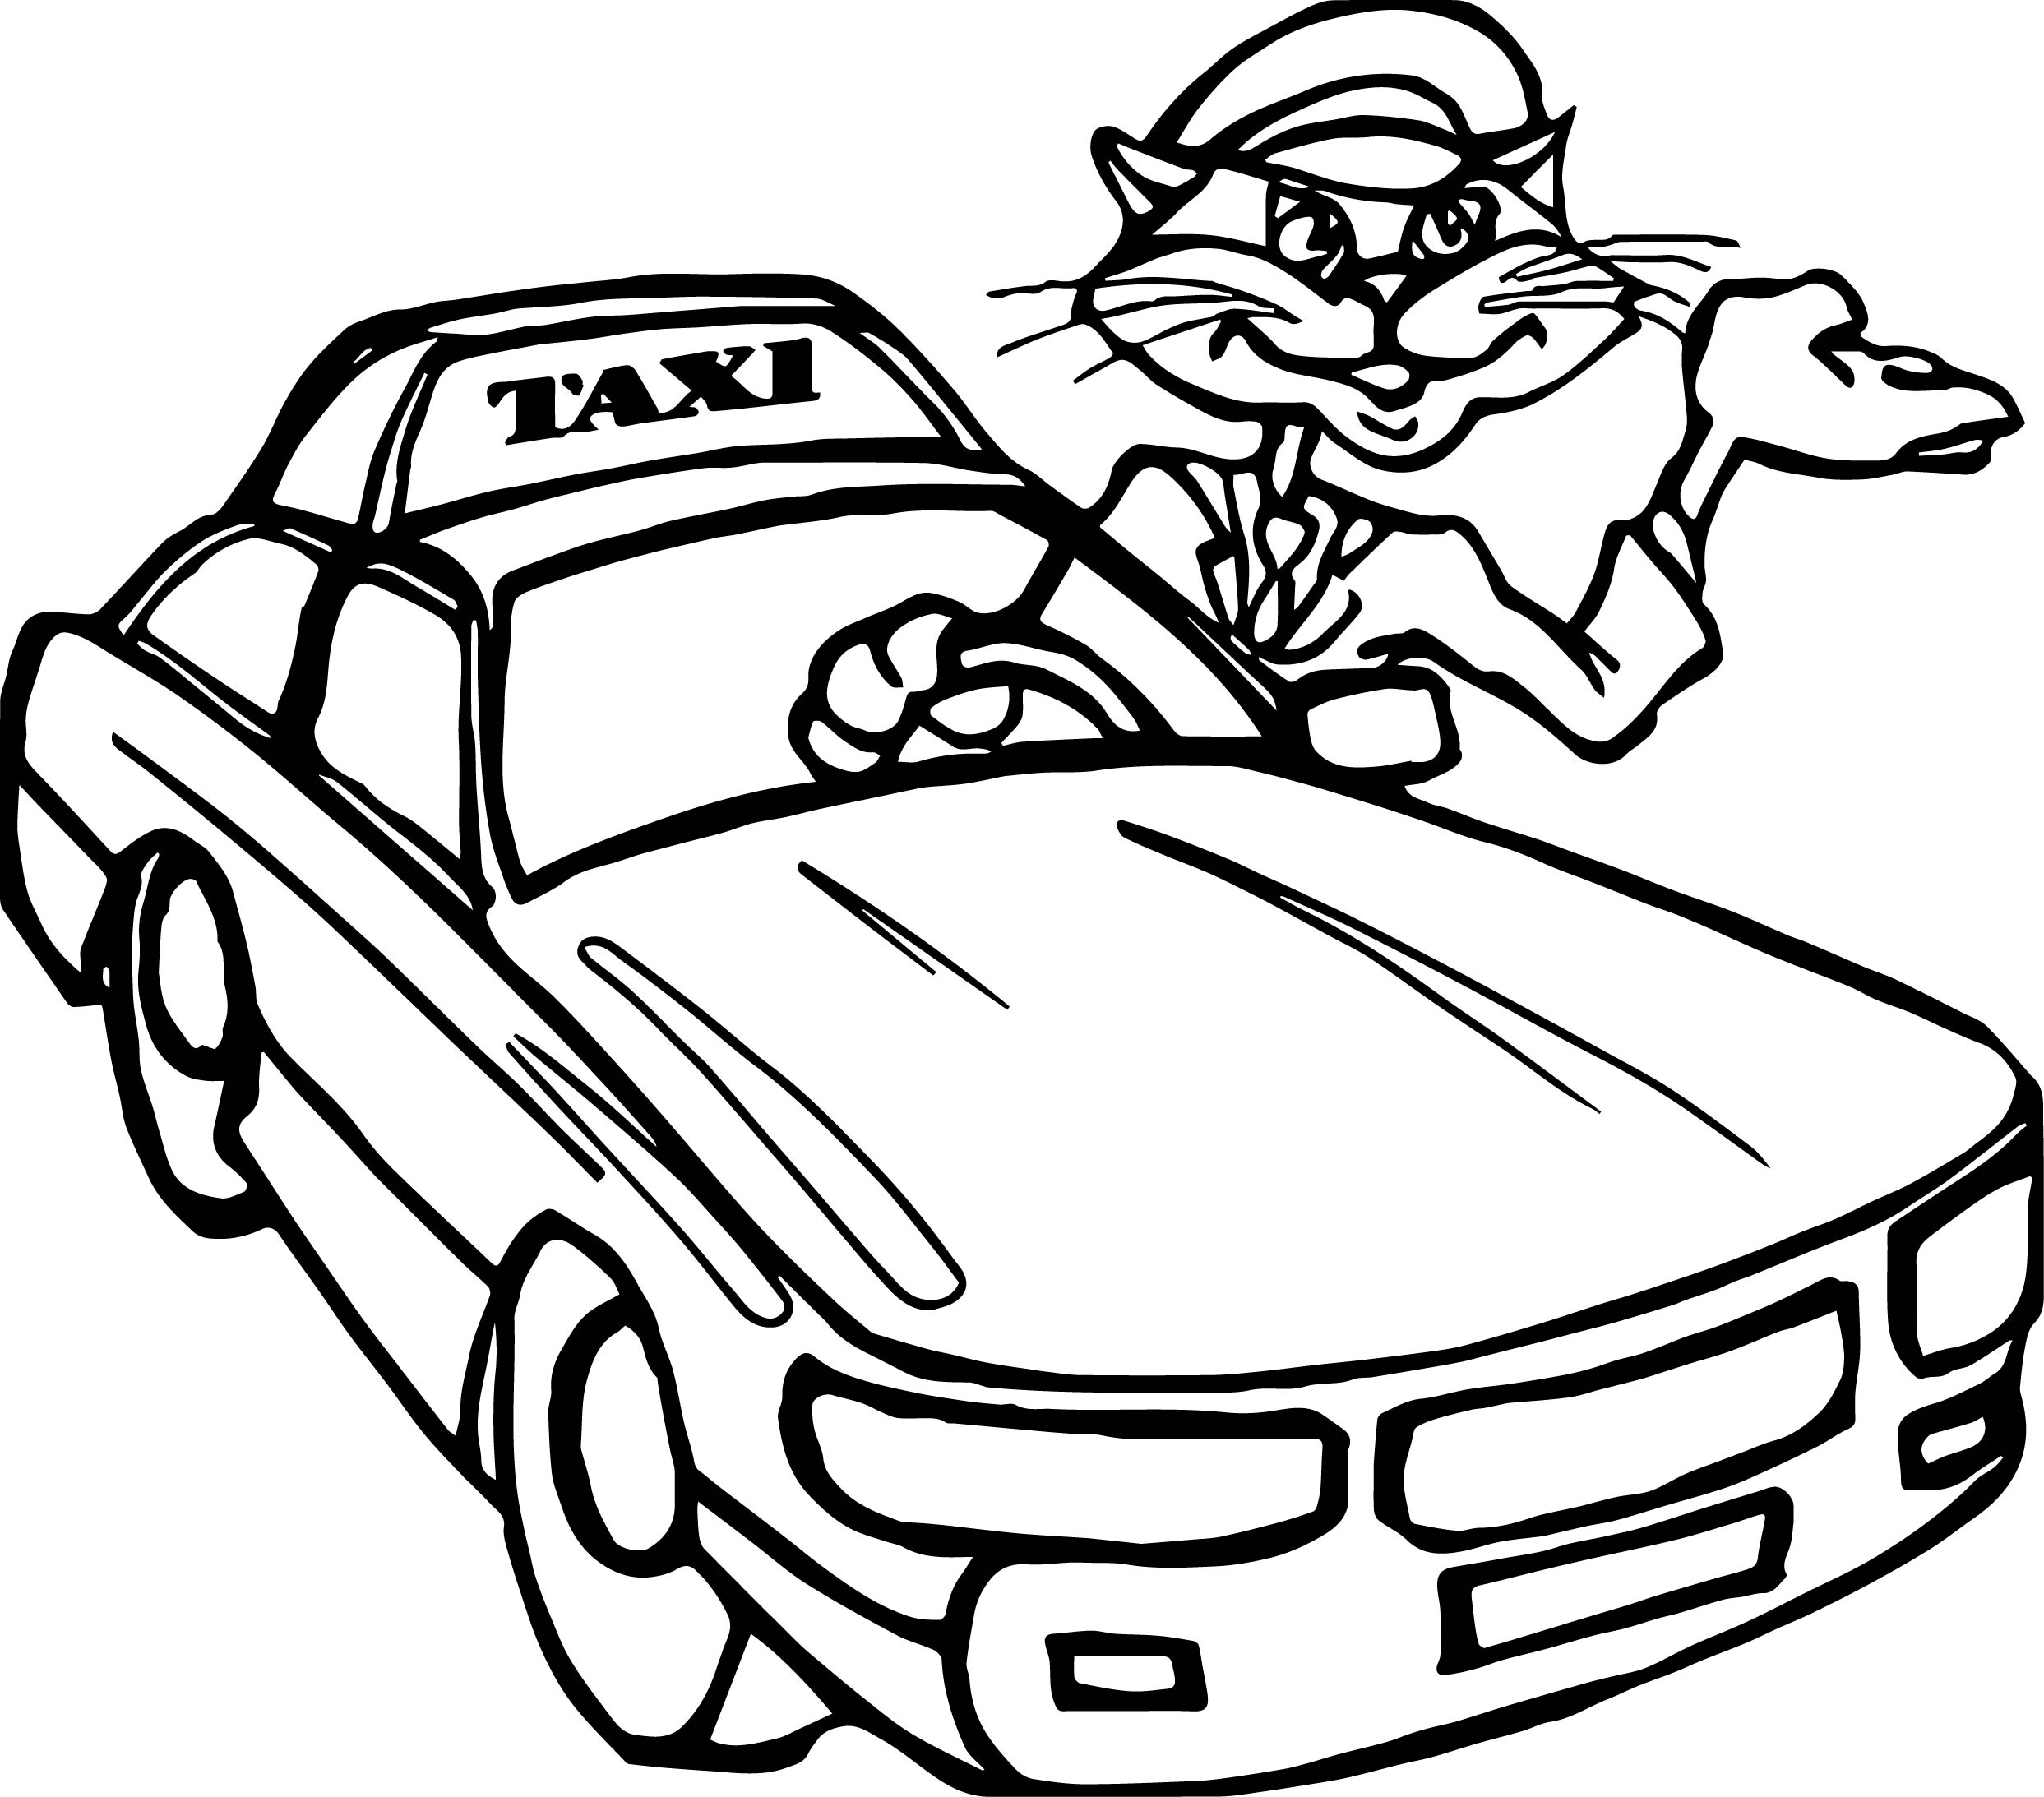 Taxi cat driver car coloring page for Taxi coloring page